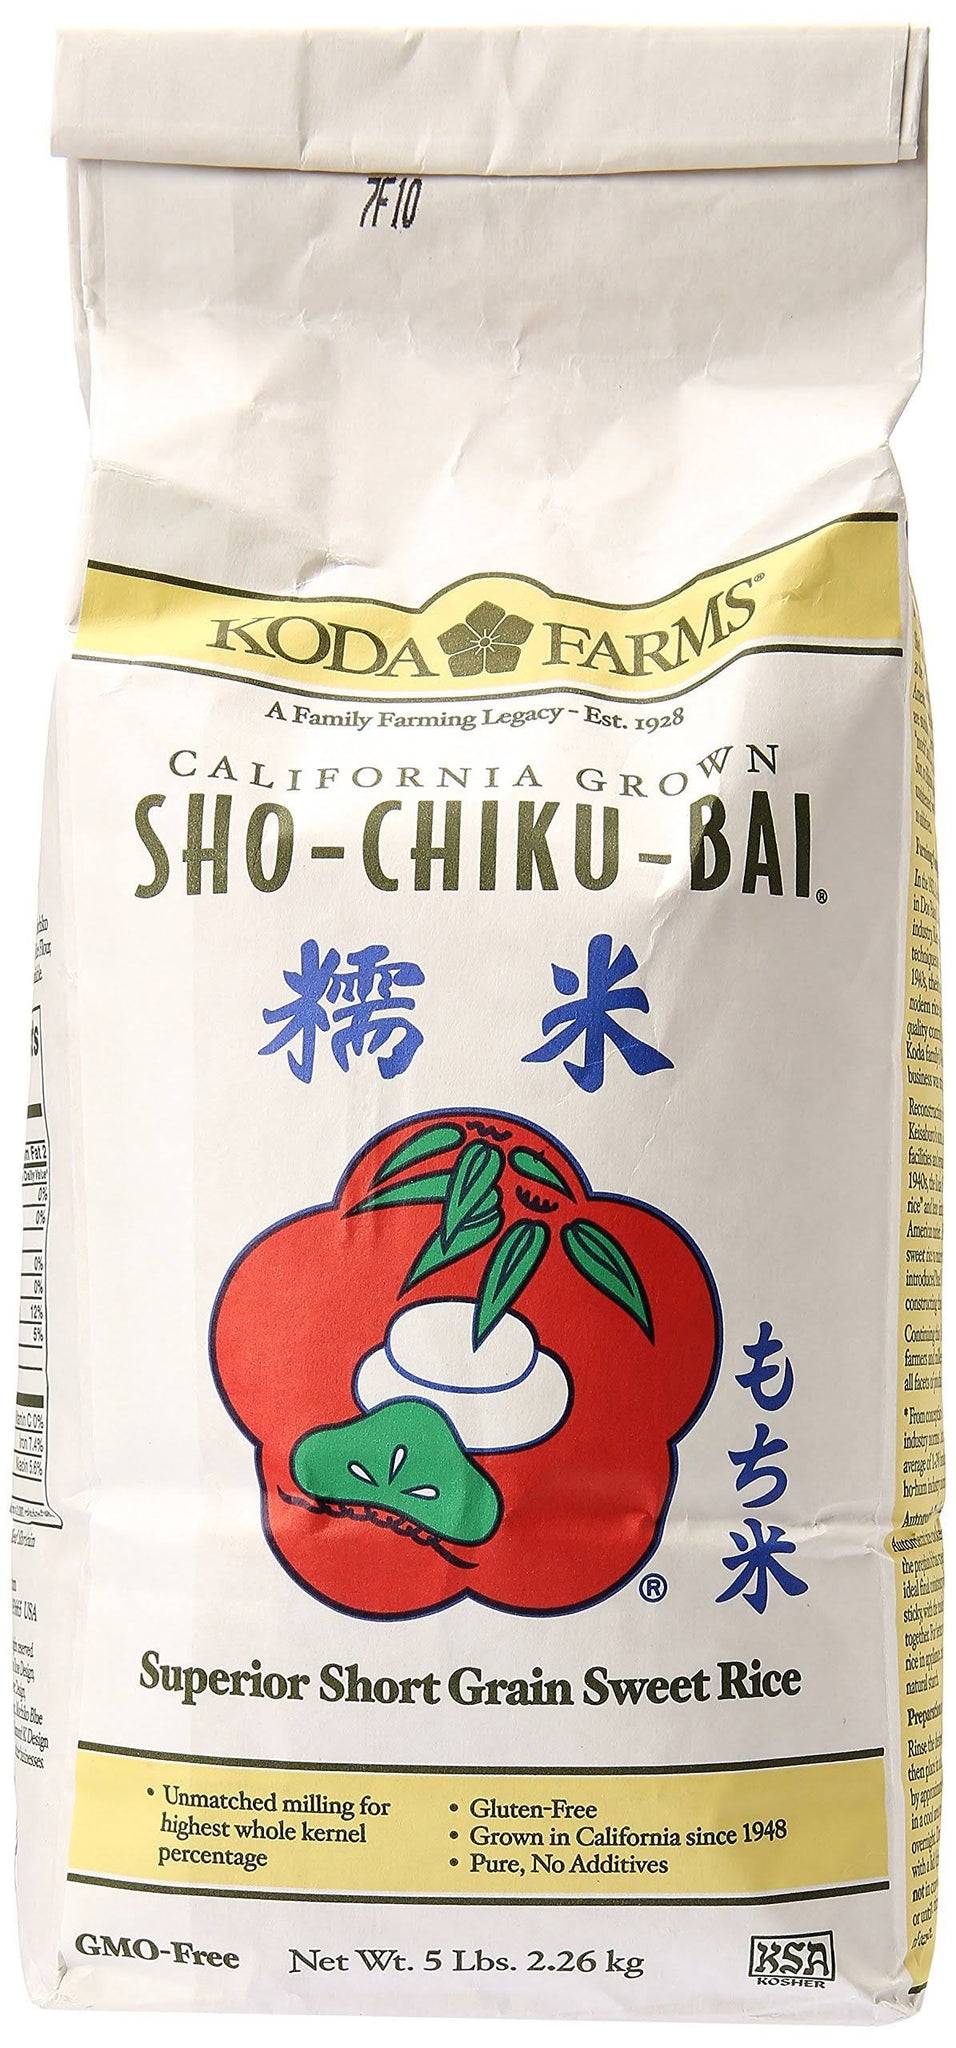 Koda Farms Sho-Chiku-Bai Short Grain Sweet Sticky Rice 5lbs